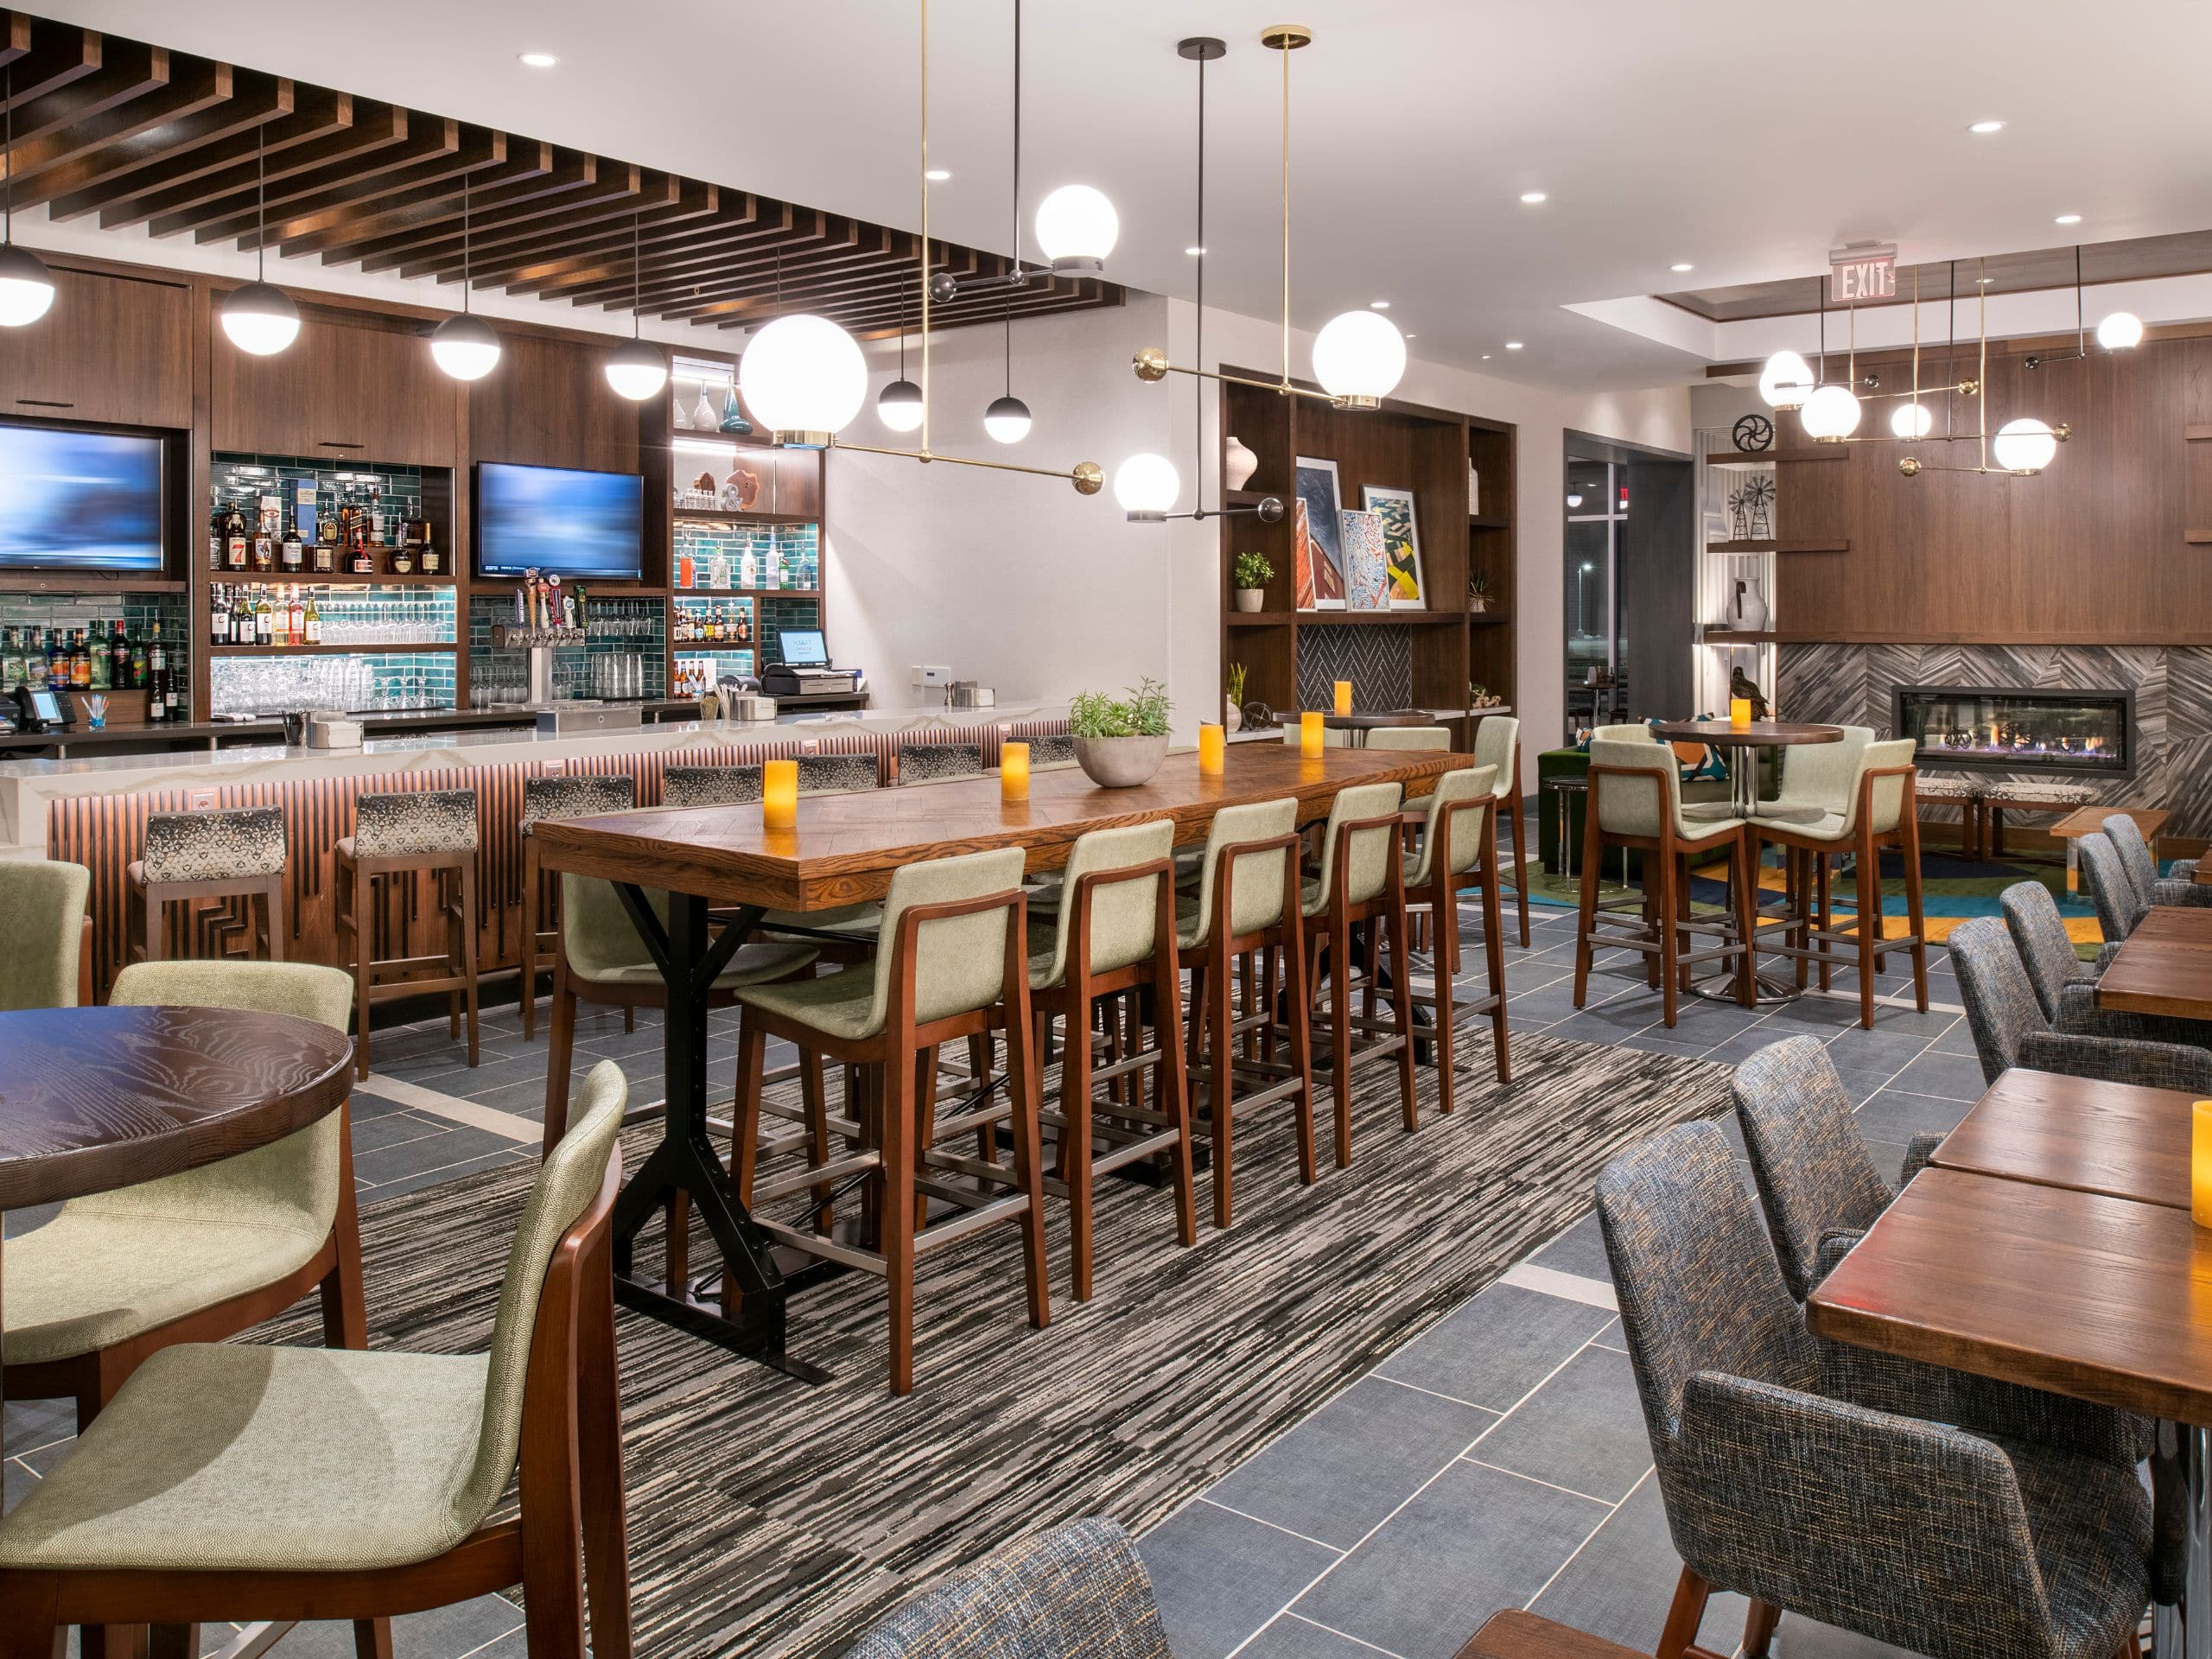 Modern hotel on the mississippi river hyatt place east moline quad cities